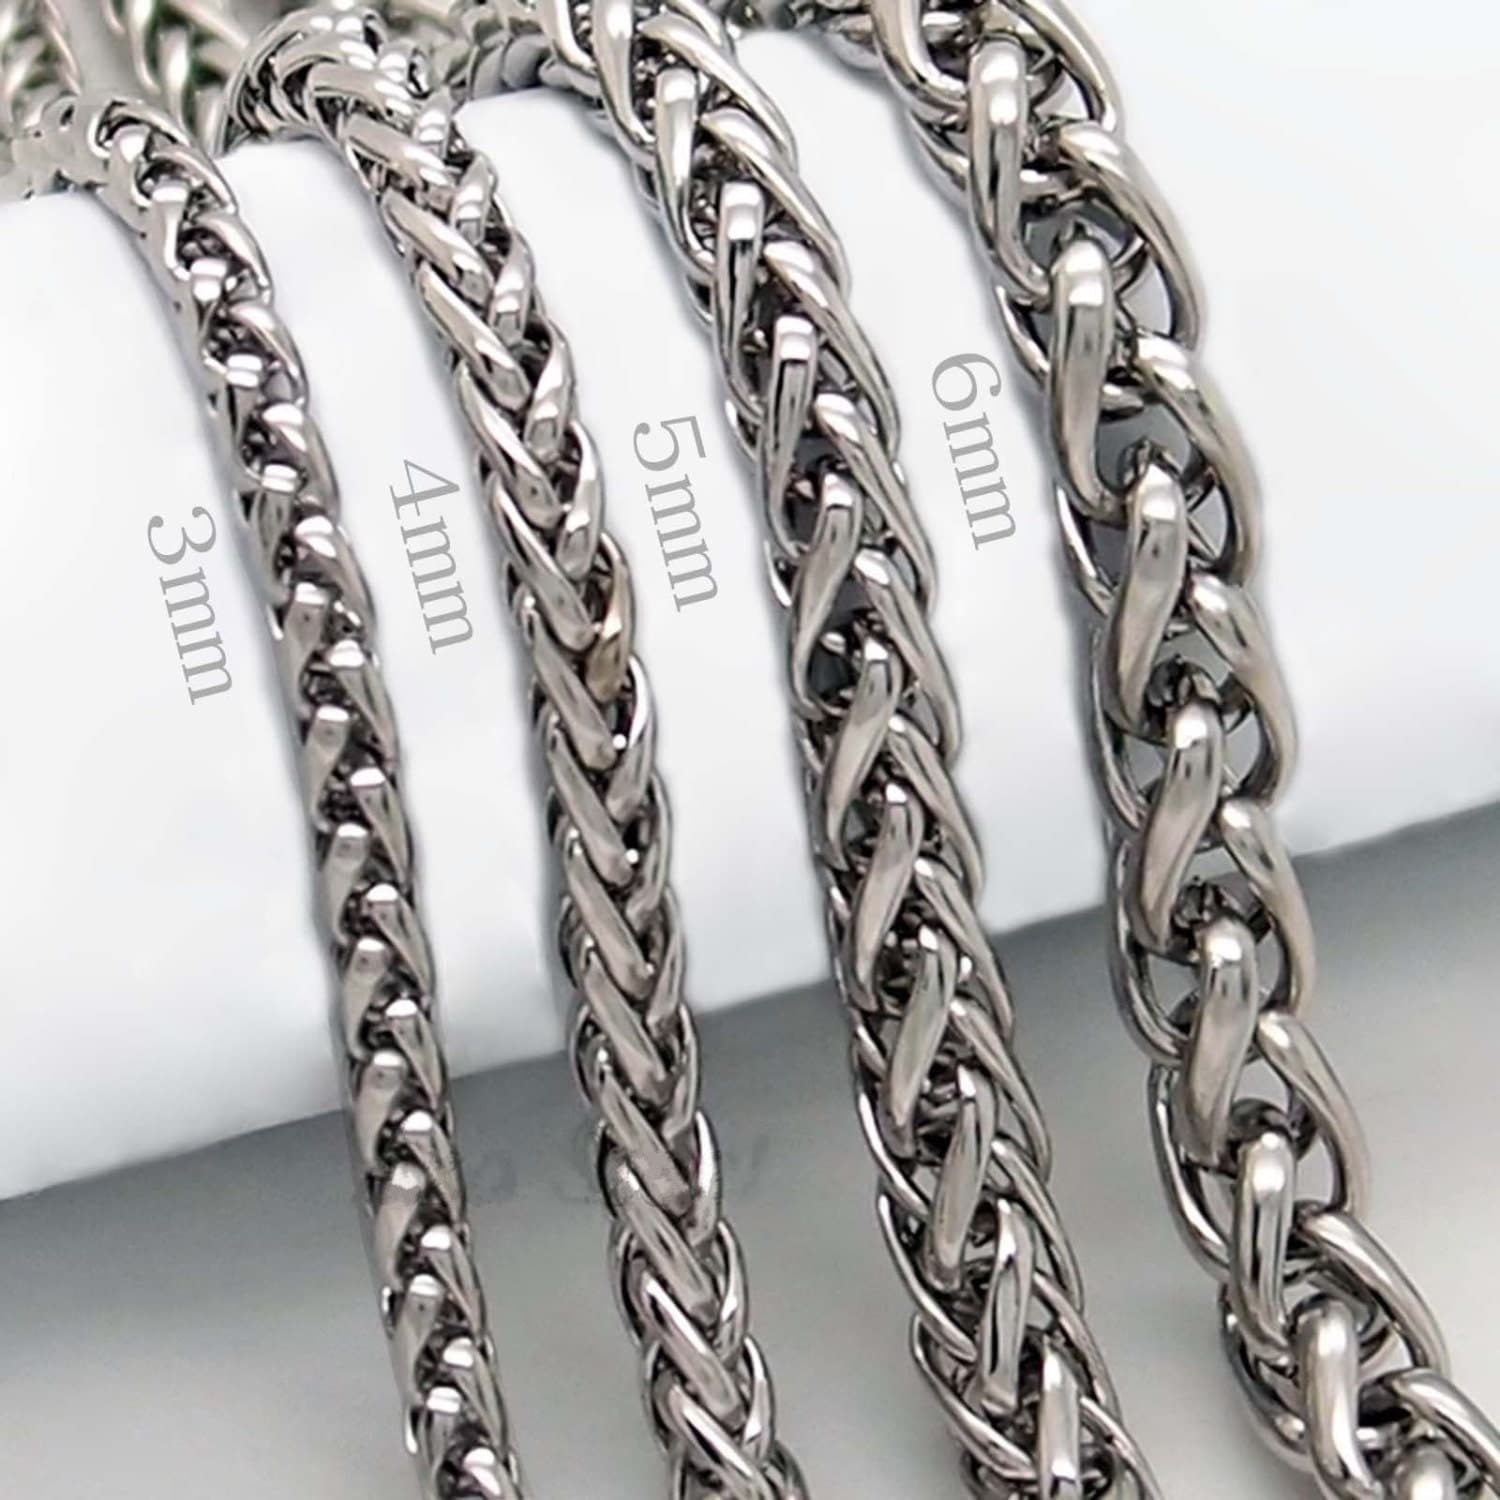 3 4 5 6 7 8mm 18 36 mens silver stainless steel wheat for Do pawn shops buy stainless steel jewelry